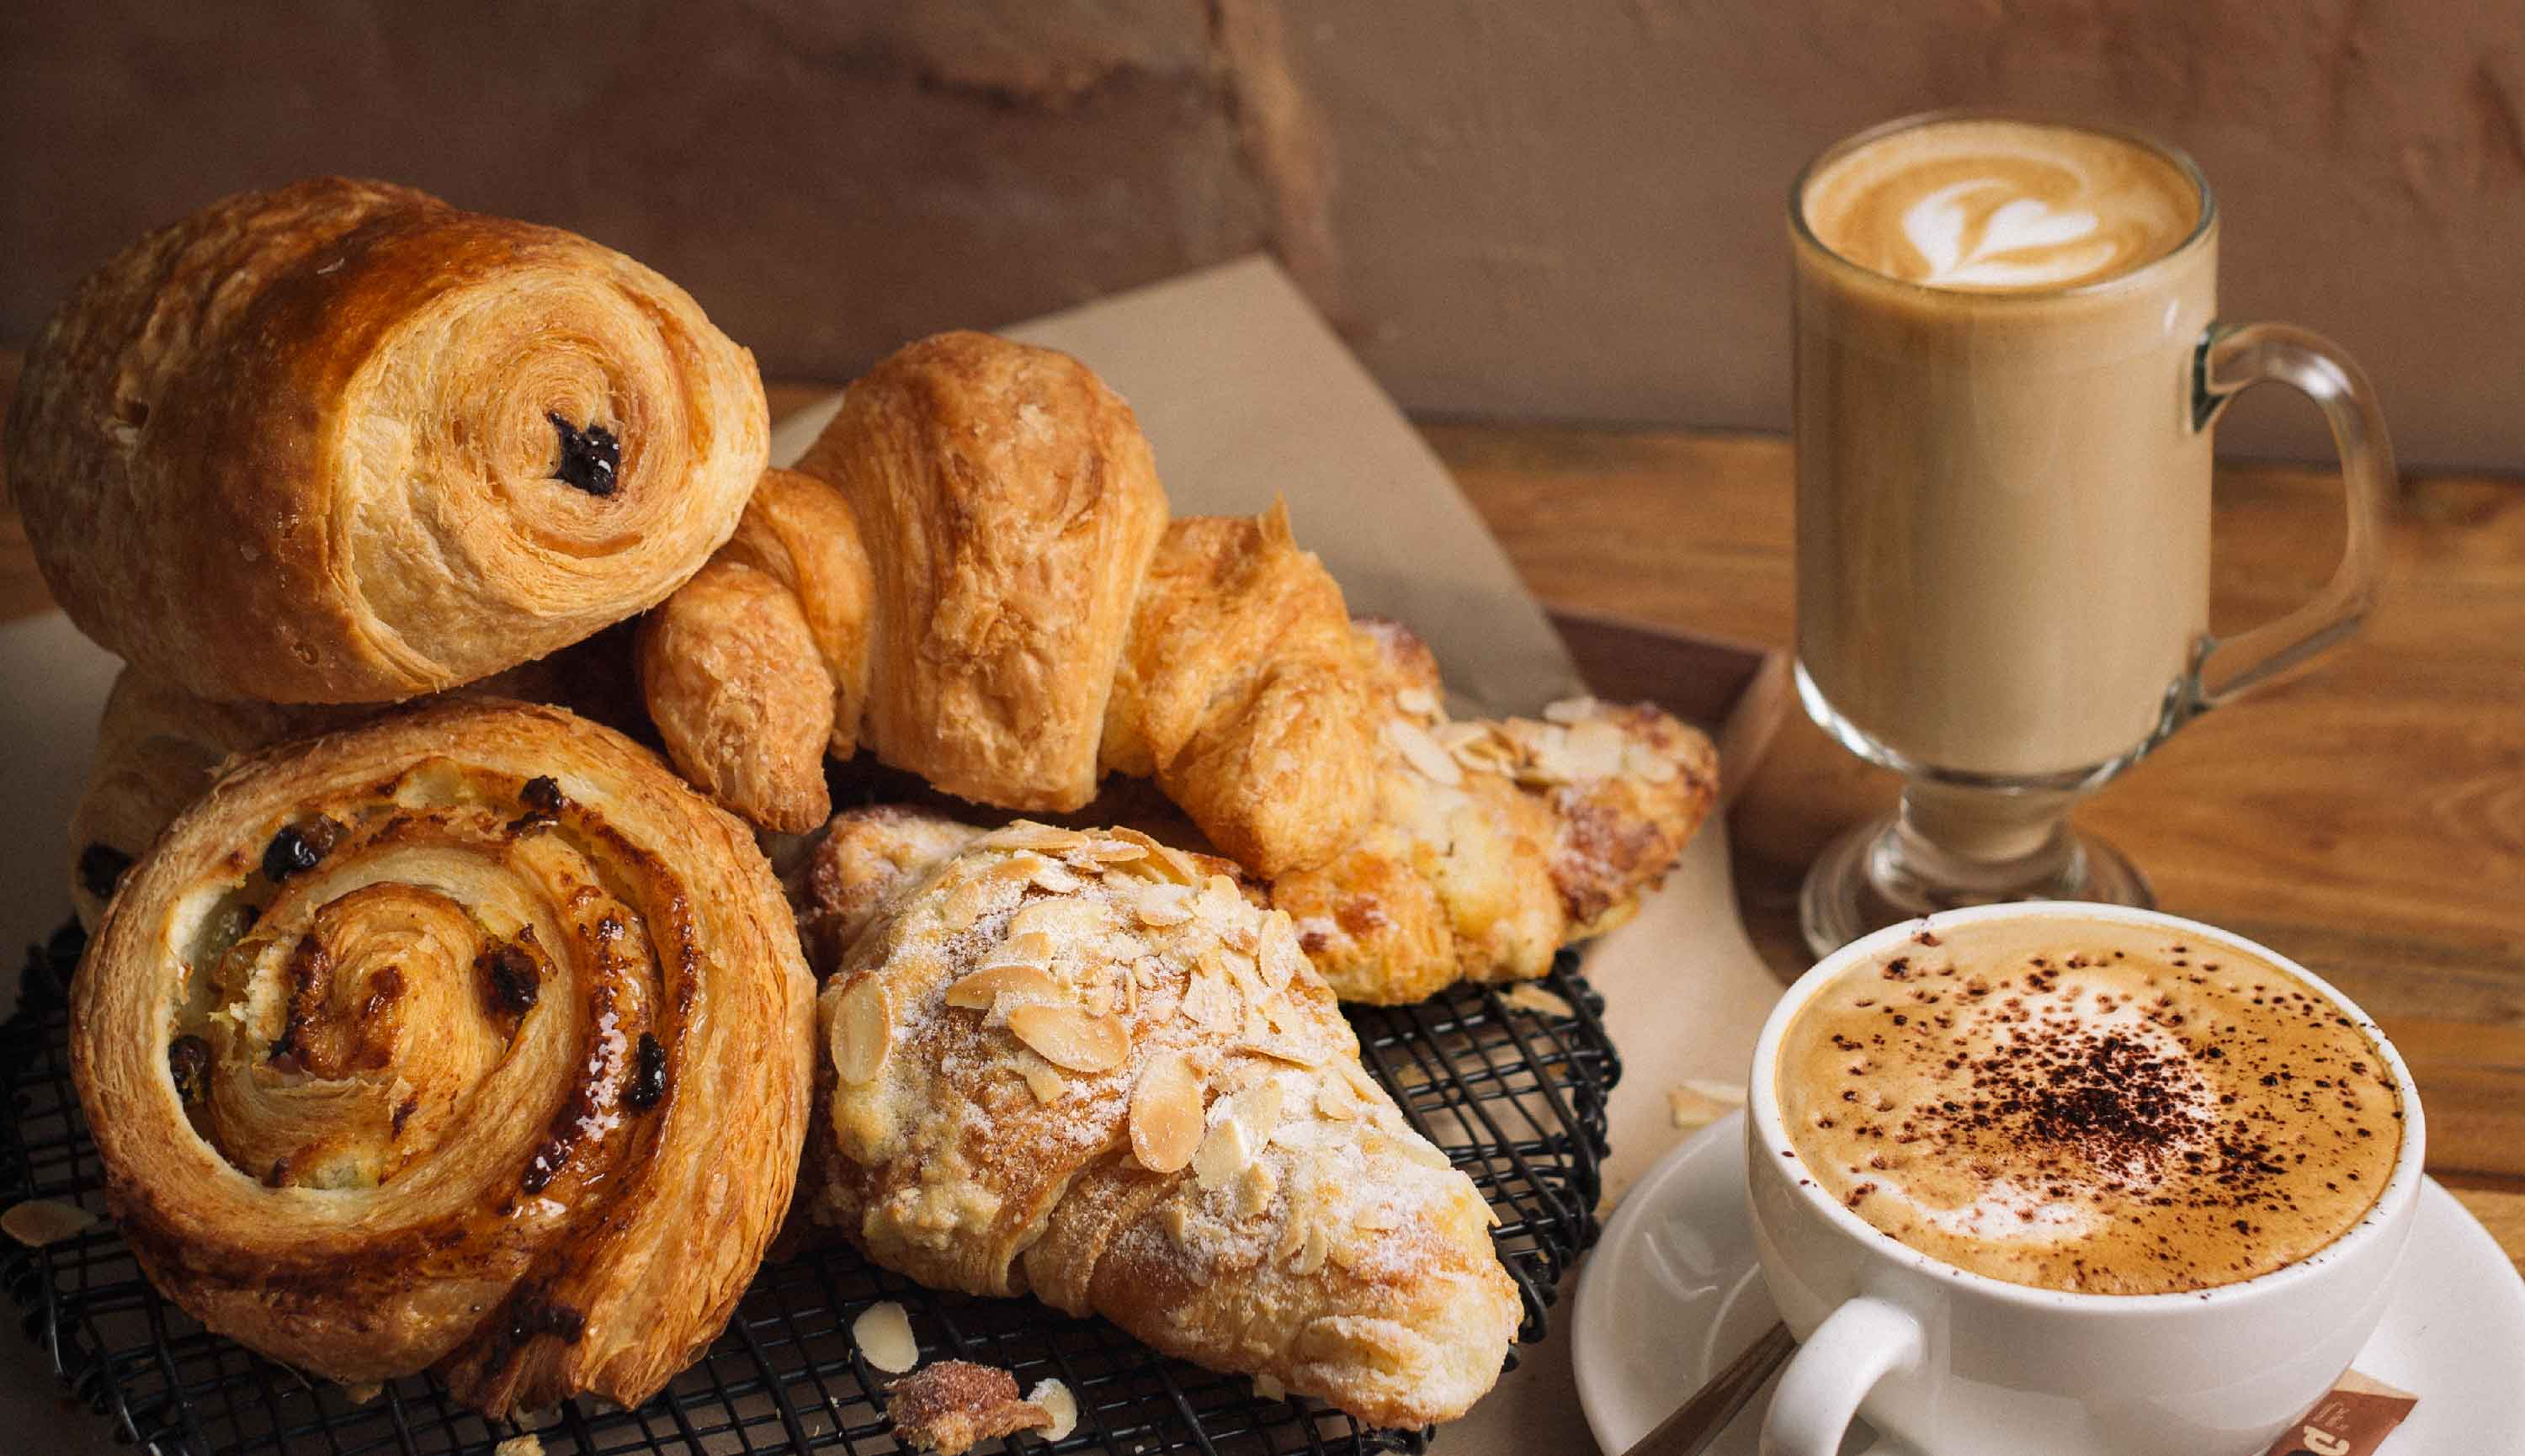 Hidangan Khas Dapaolo - Fresh Pastries with Italian Coffee